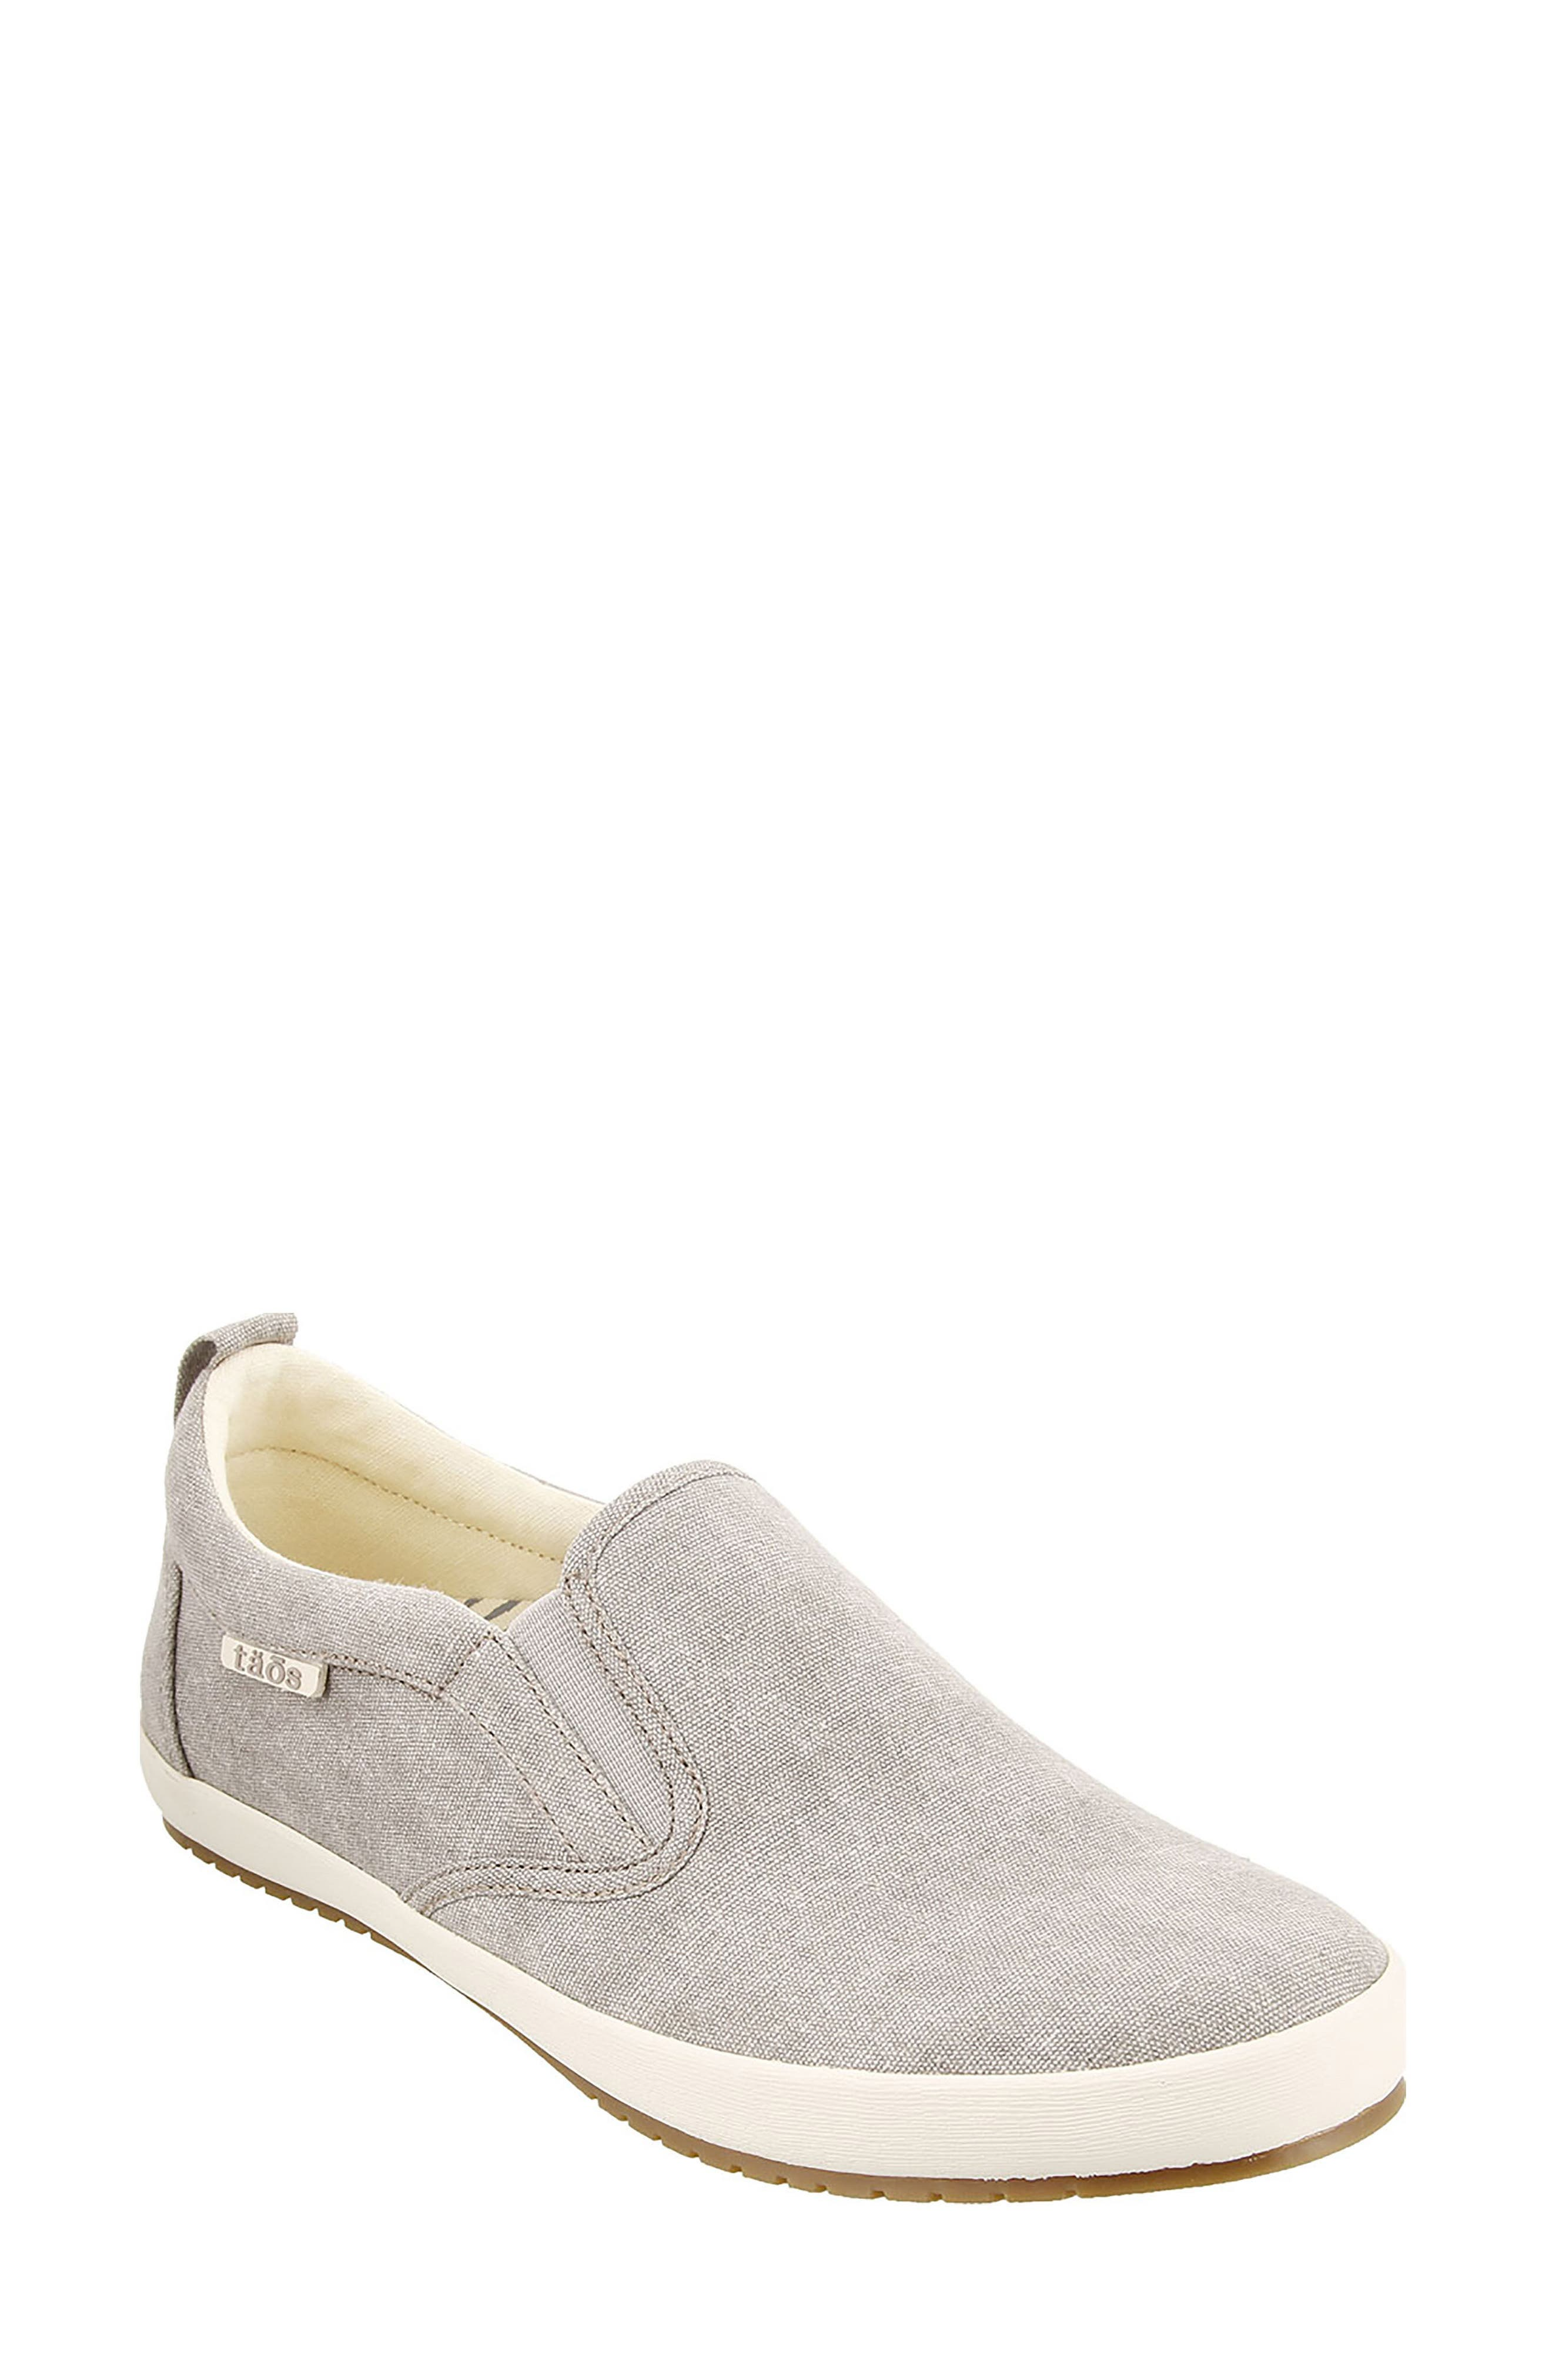 Dandy Slip-On Sneaker,                         Main,                         color, GREY WASHED CANVAS